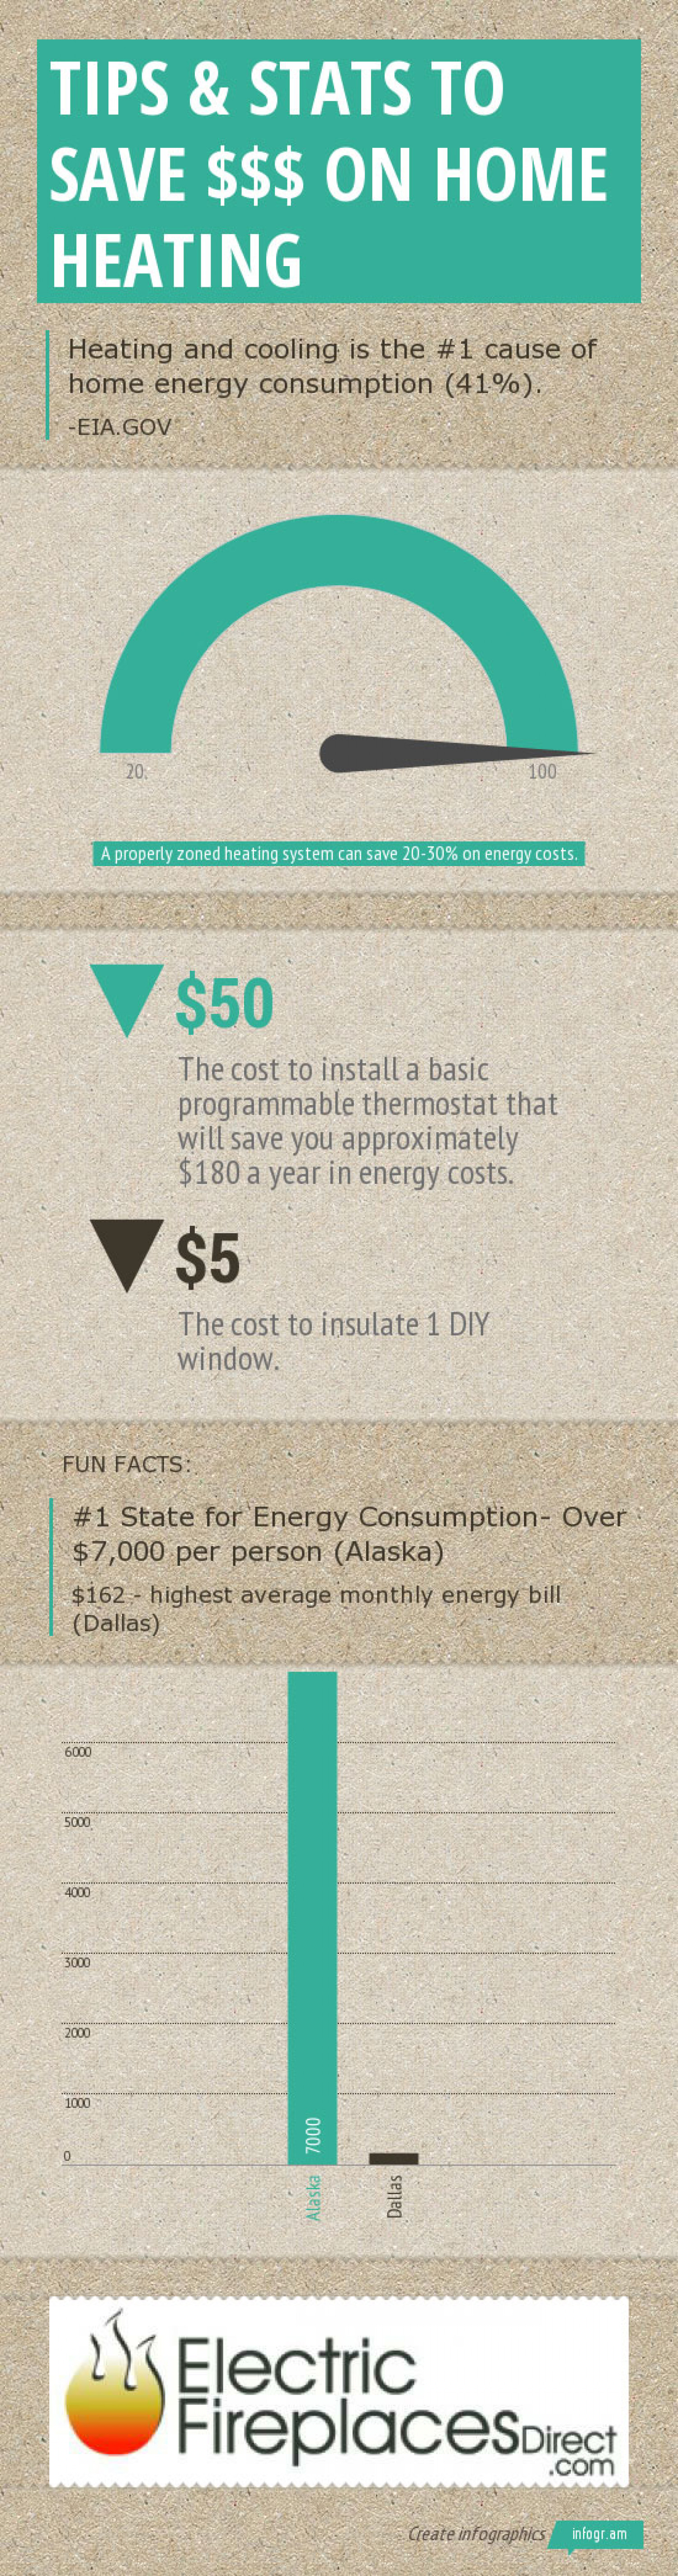 Tips & Stats to Save $$ on Home Heating Infographic